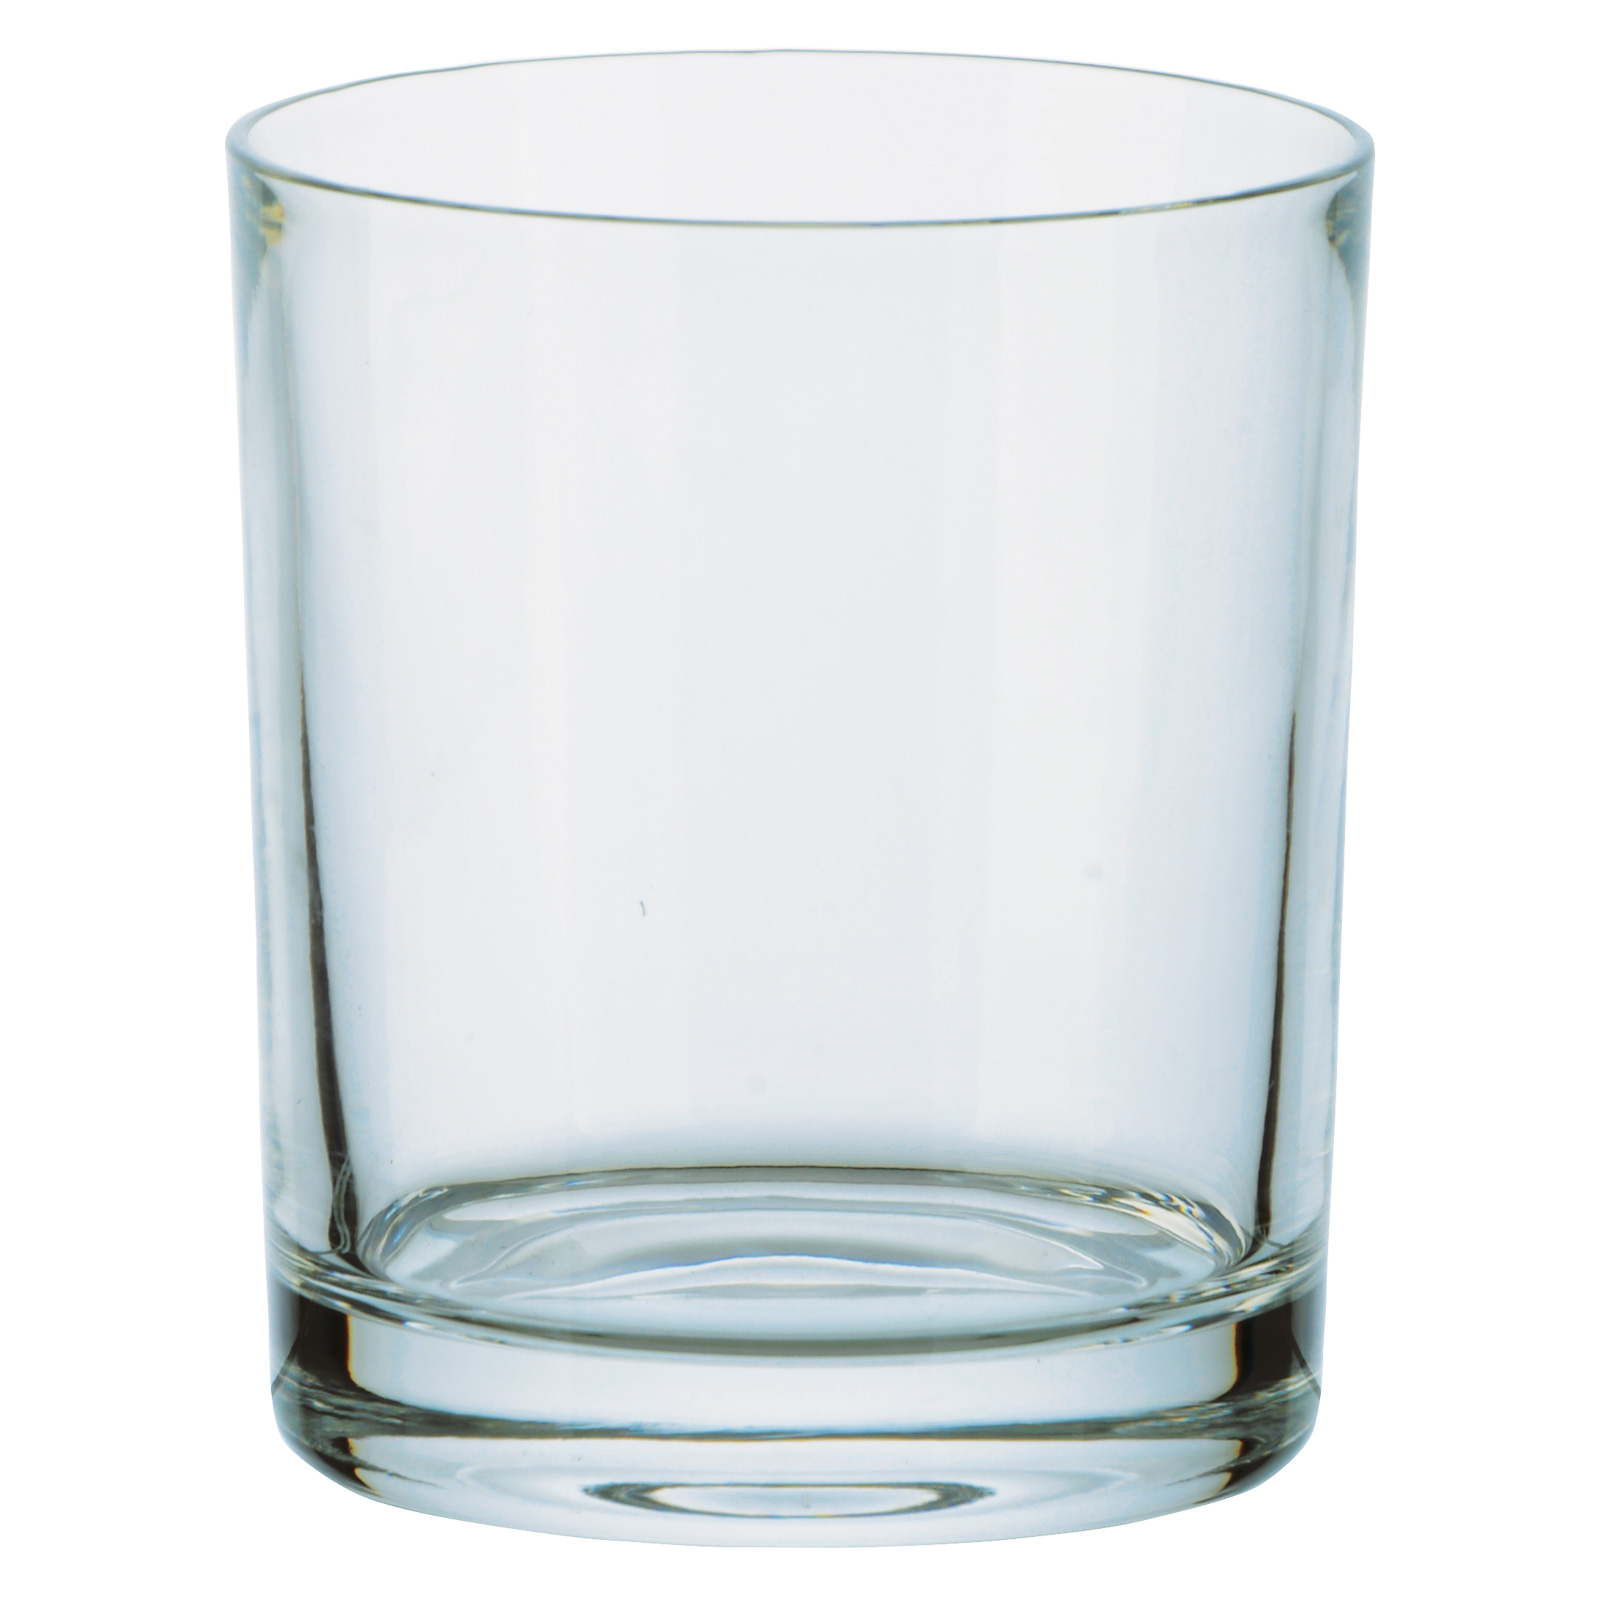 Set of 6 Plain Whisky Tumblers (24%) by Bohemia